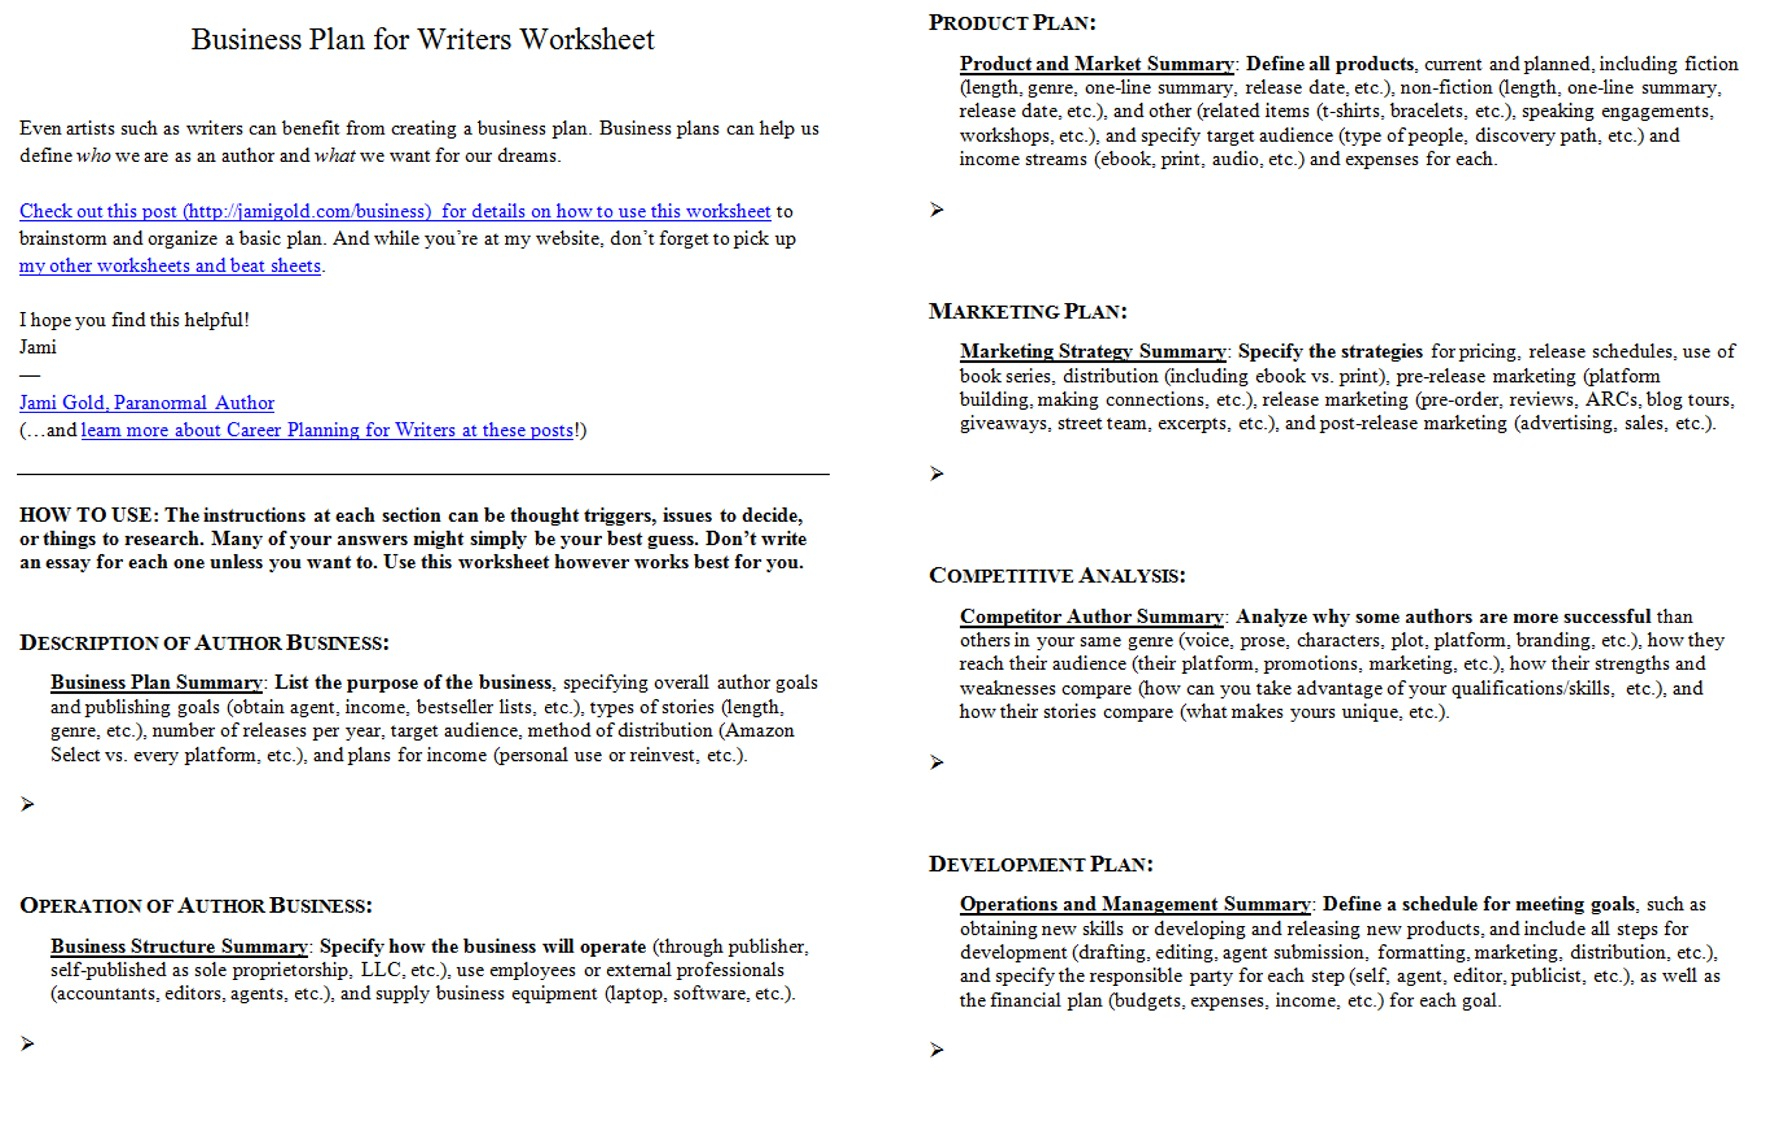 Proatmealus  Sweet Worksheets For Writers  Jami Gold Paranormal Author With Handsome Screen Shot Of Both Pages Of The Business Plan For Writers Worksheet With Awesome Organizing Data Worksheet Also Algebraic Expressions Worksheets In Addition Th Grade Science Worksheets And Solving Linear Equations Worksheet As Well As Oxidation Numbers Worksheet Answers Additionally Principles Of The Constitution Worksheet From Jamigoldcom With Proatmealus  Handsome Worksheets For Writers  Jami Gold Paranormal Author With Awesome Screen Shot Of Both Pages Of The Business Plan For Writers Worksheet And Sweet Organizing Data Worksheet Also Algebraic Expressions Worksheets In Addition Th Grade Science Worksheets From Jamigoldcom